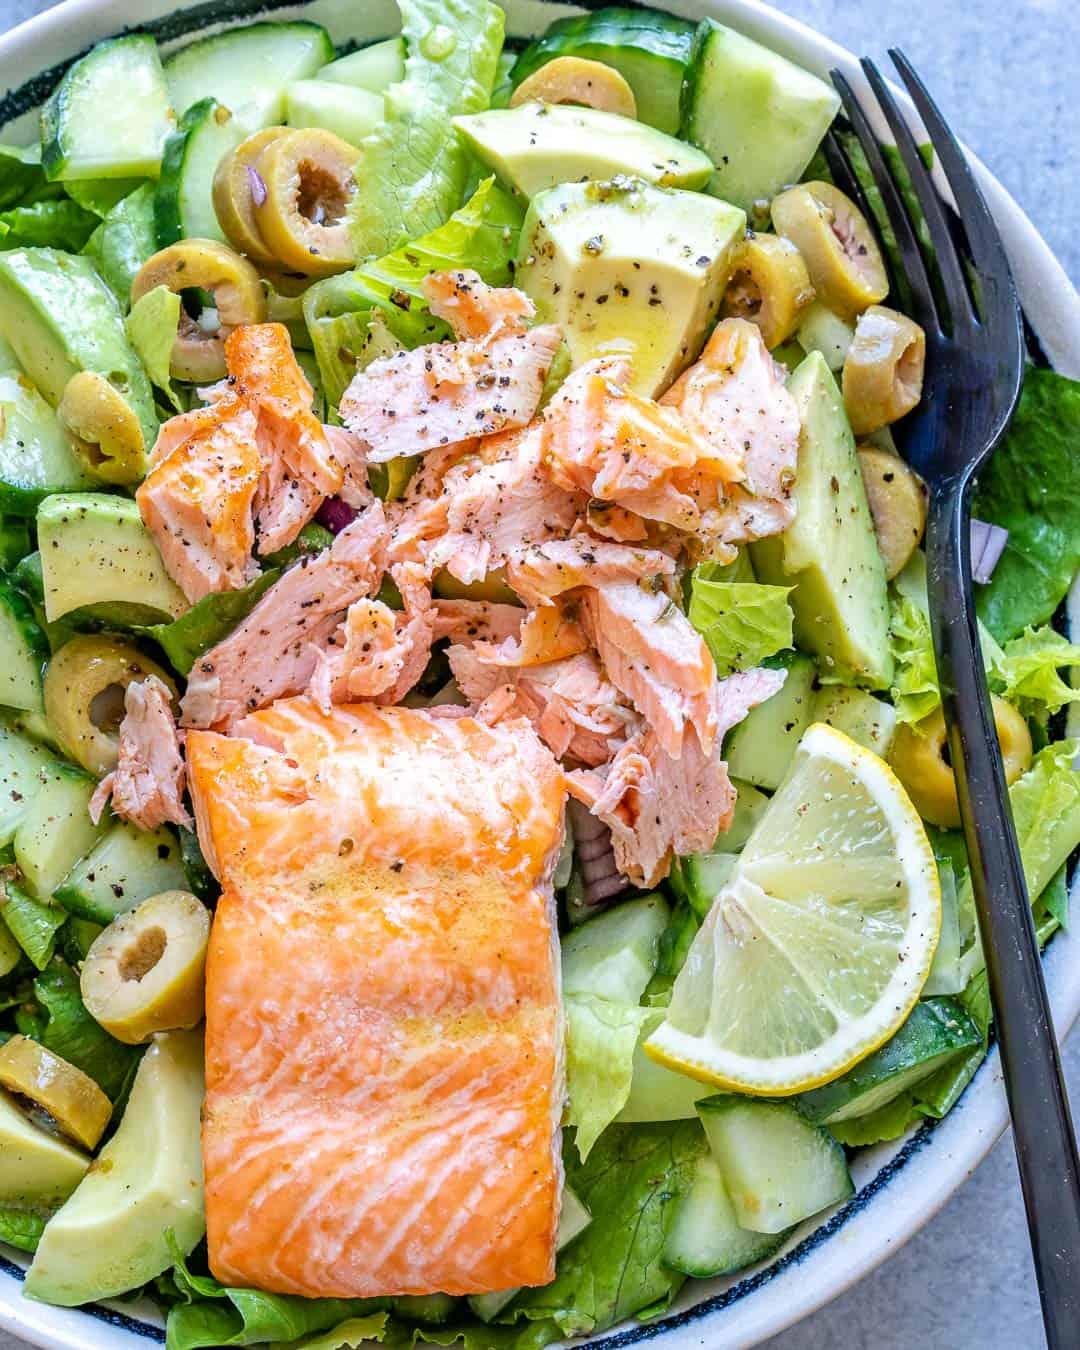 Full bowl of salad with flaky salmon and black fork on top